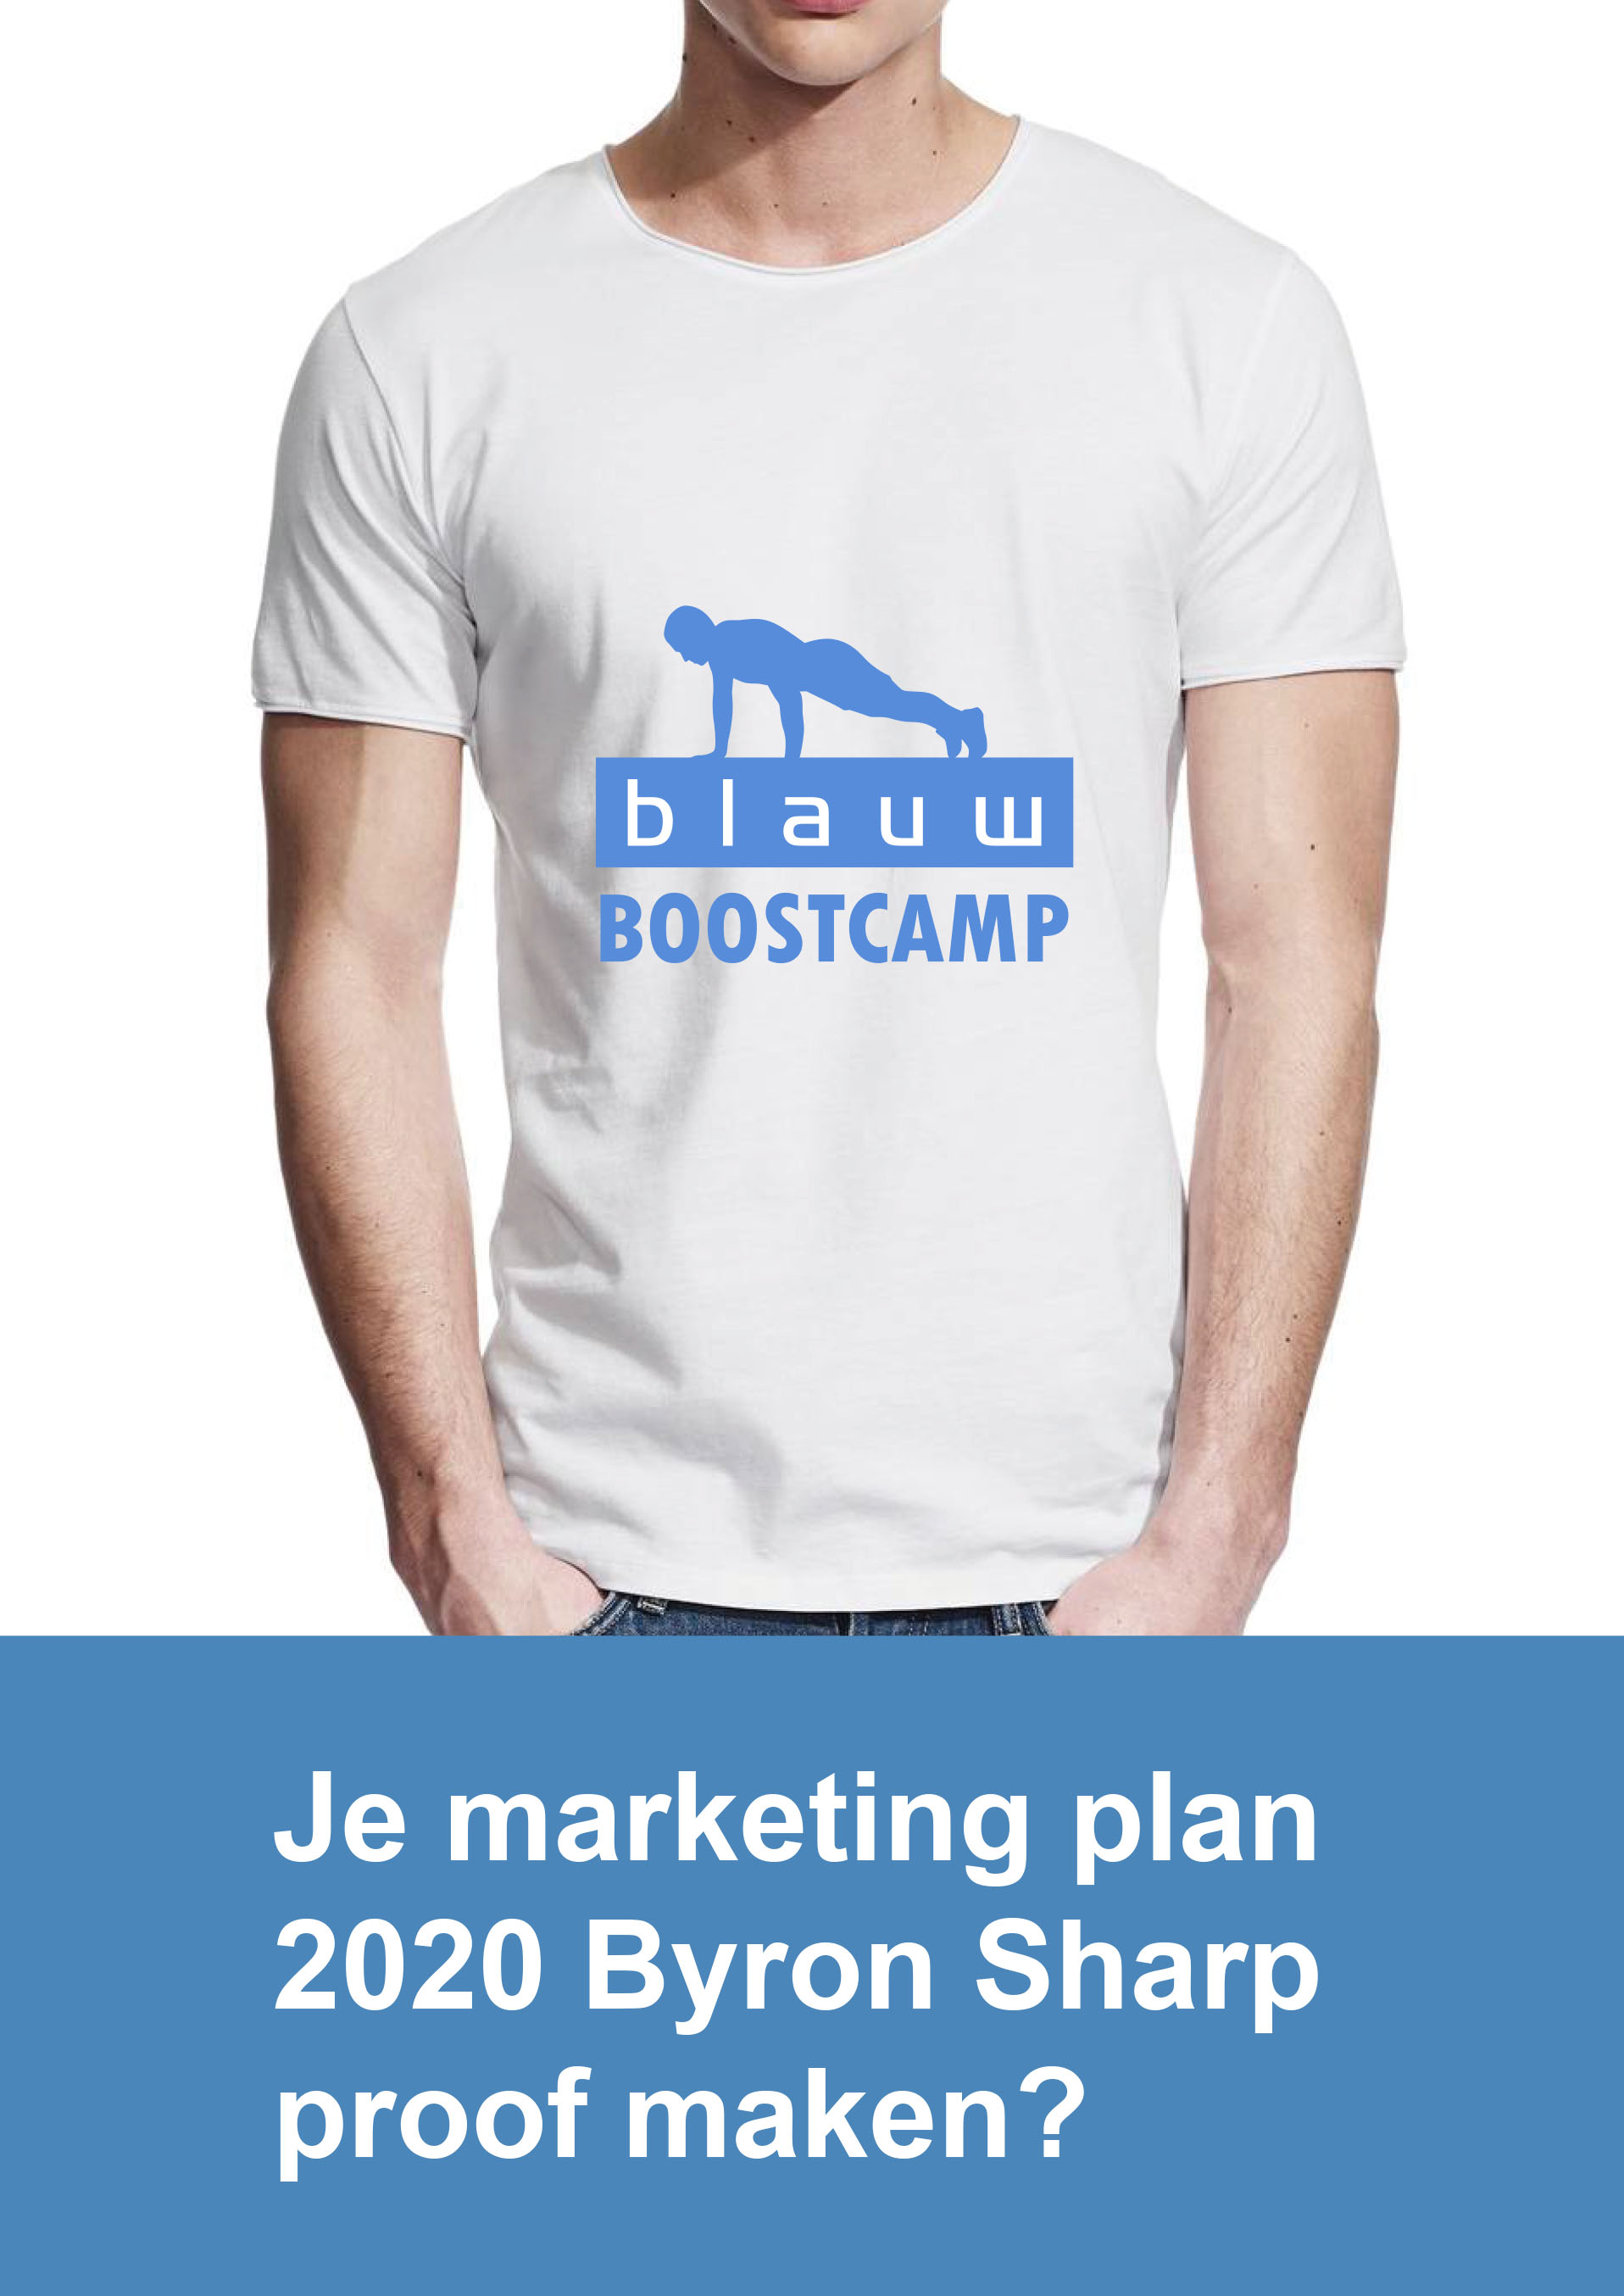 Blauw research Boostcamp